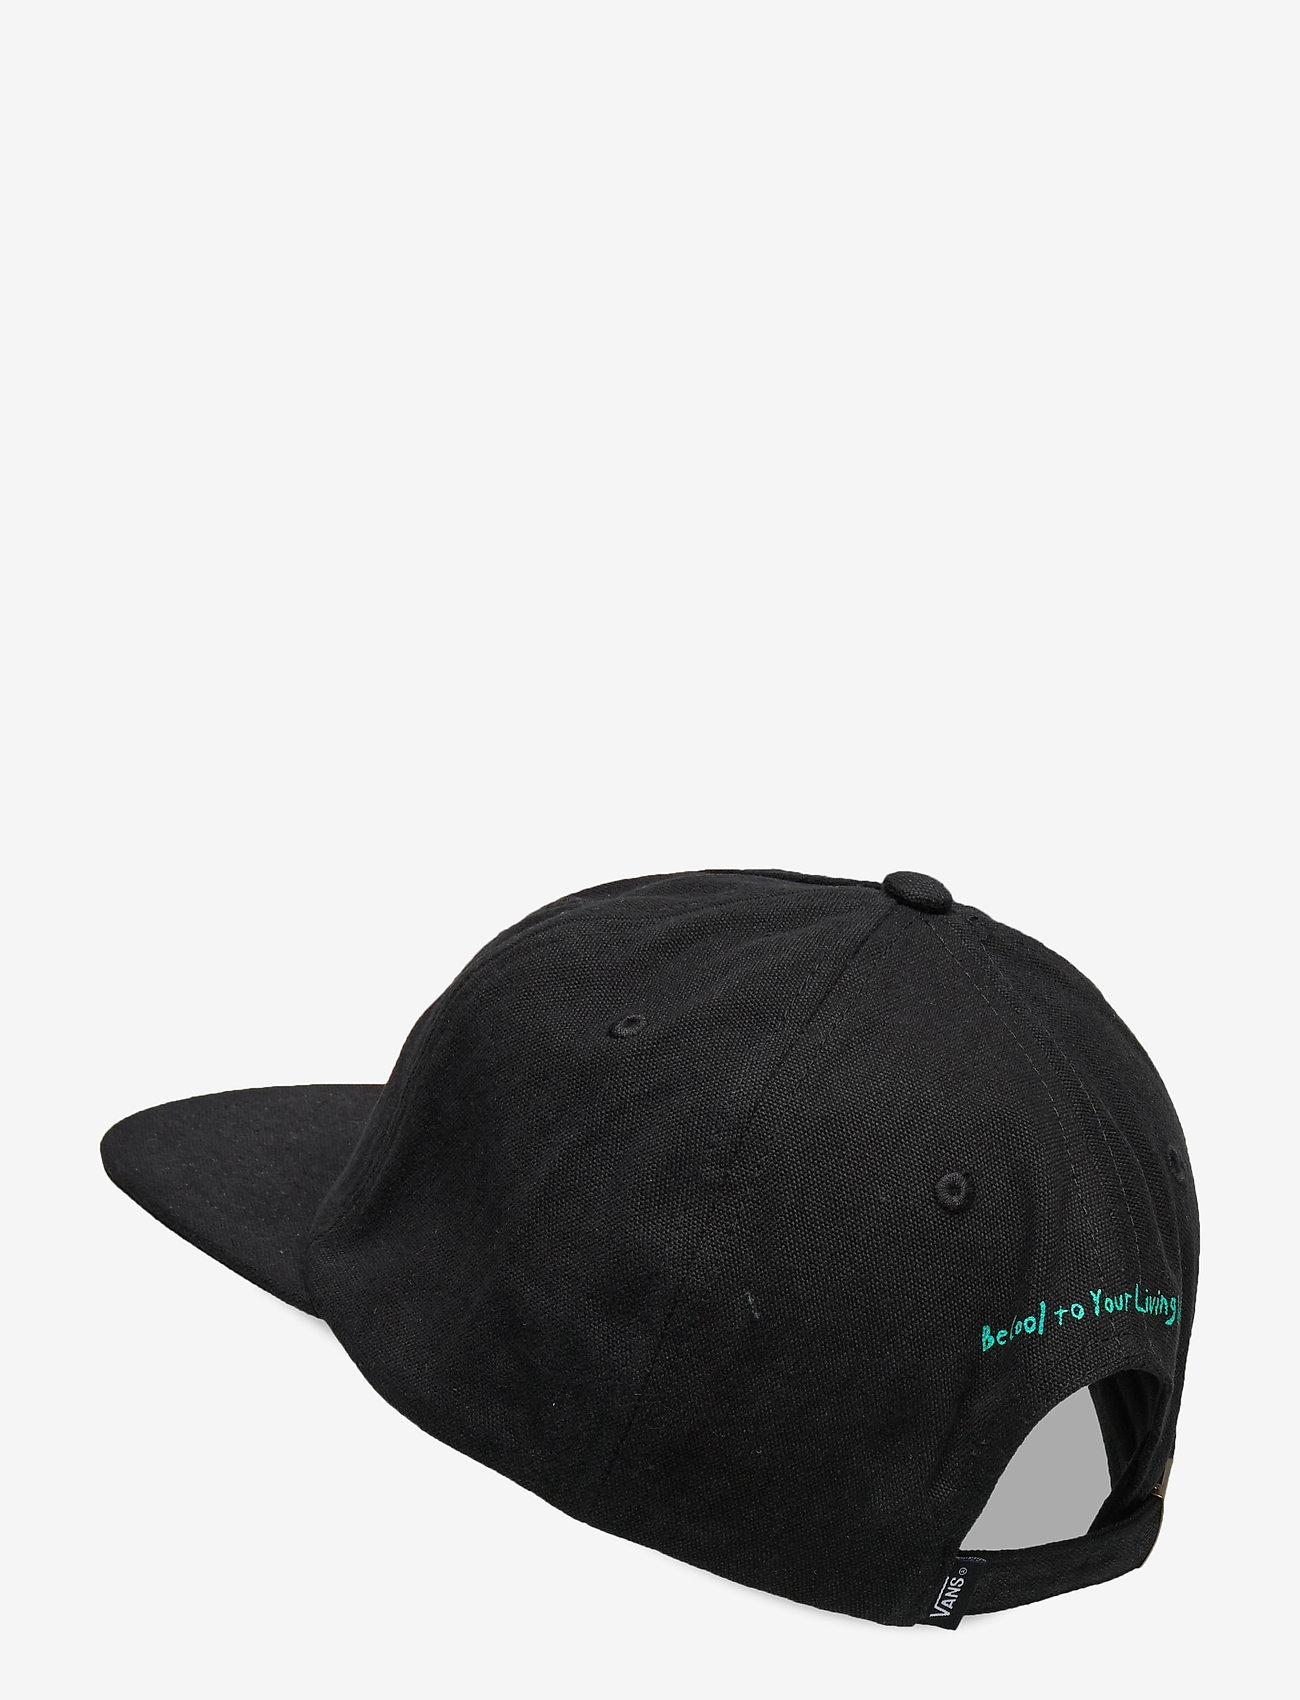 VANS - VANS X CJ SHALLOW UNSTRUCTURED - flat caps - vintage black - 1